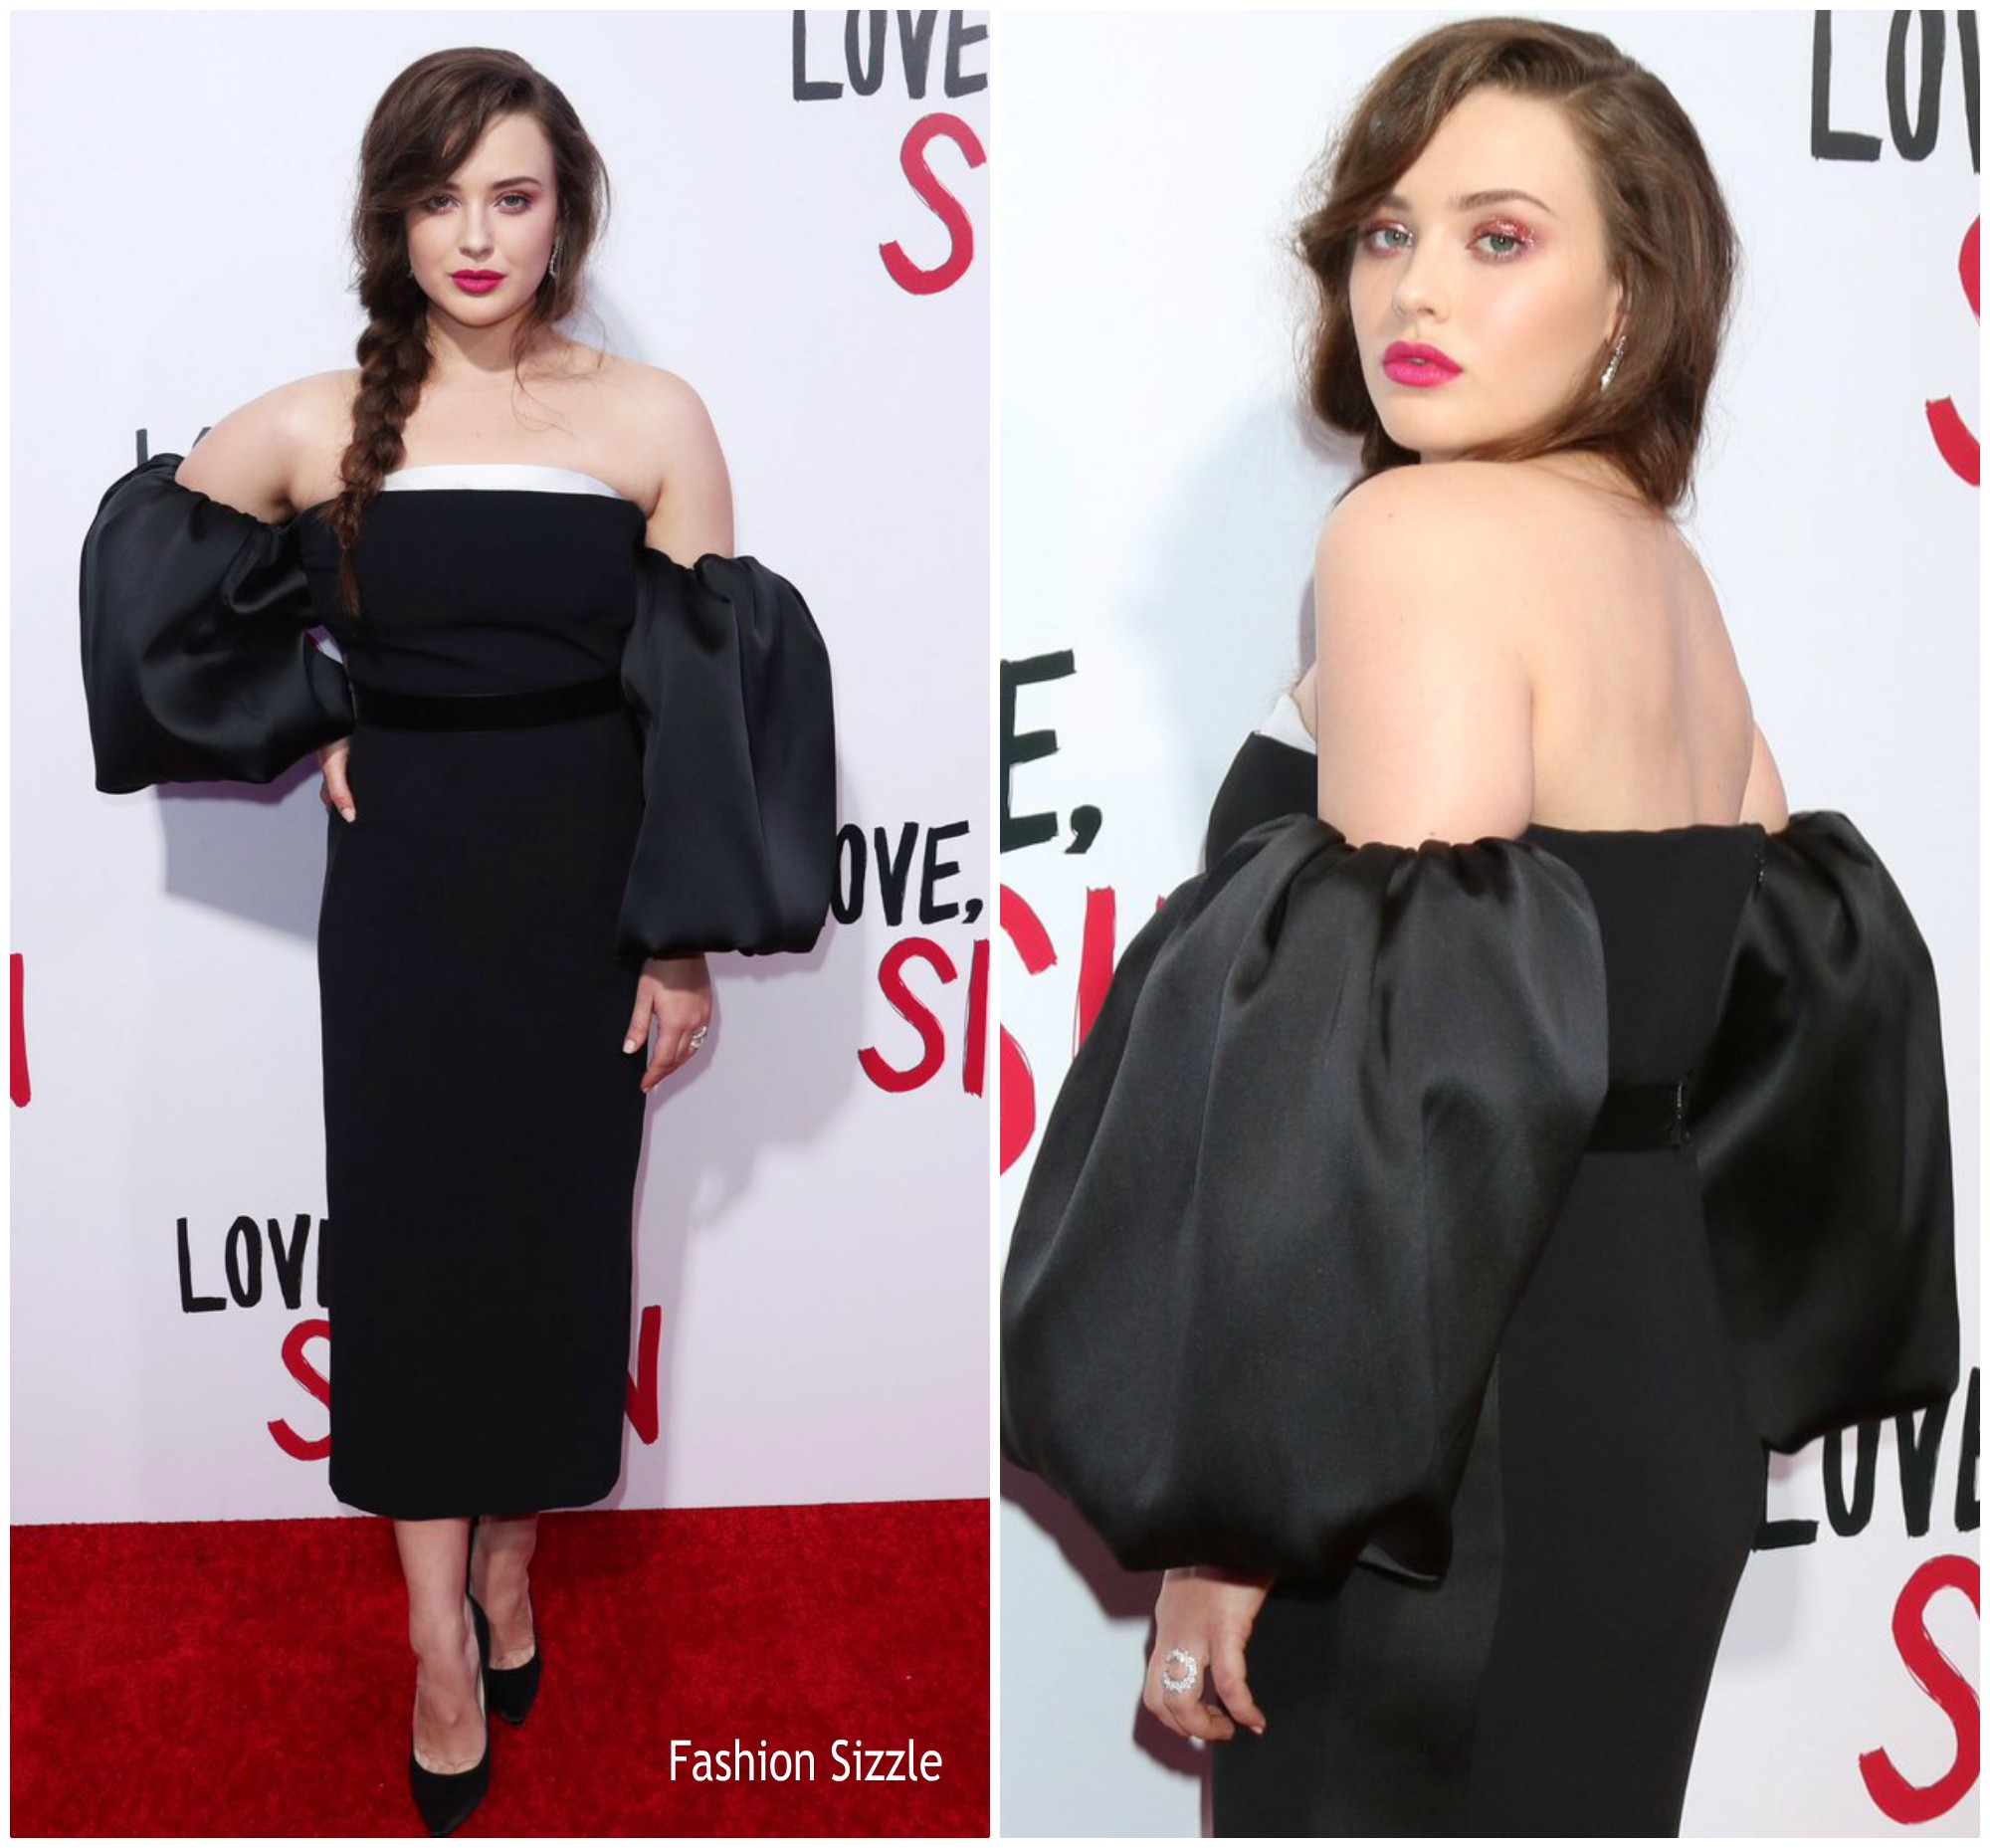 katherine-langford-in-stella-mccartney-love-simon-la-screening